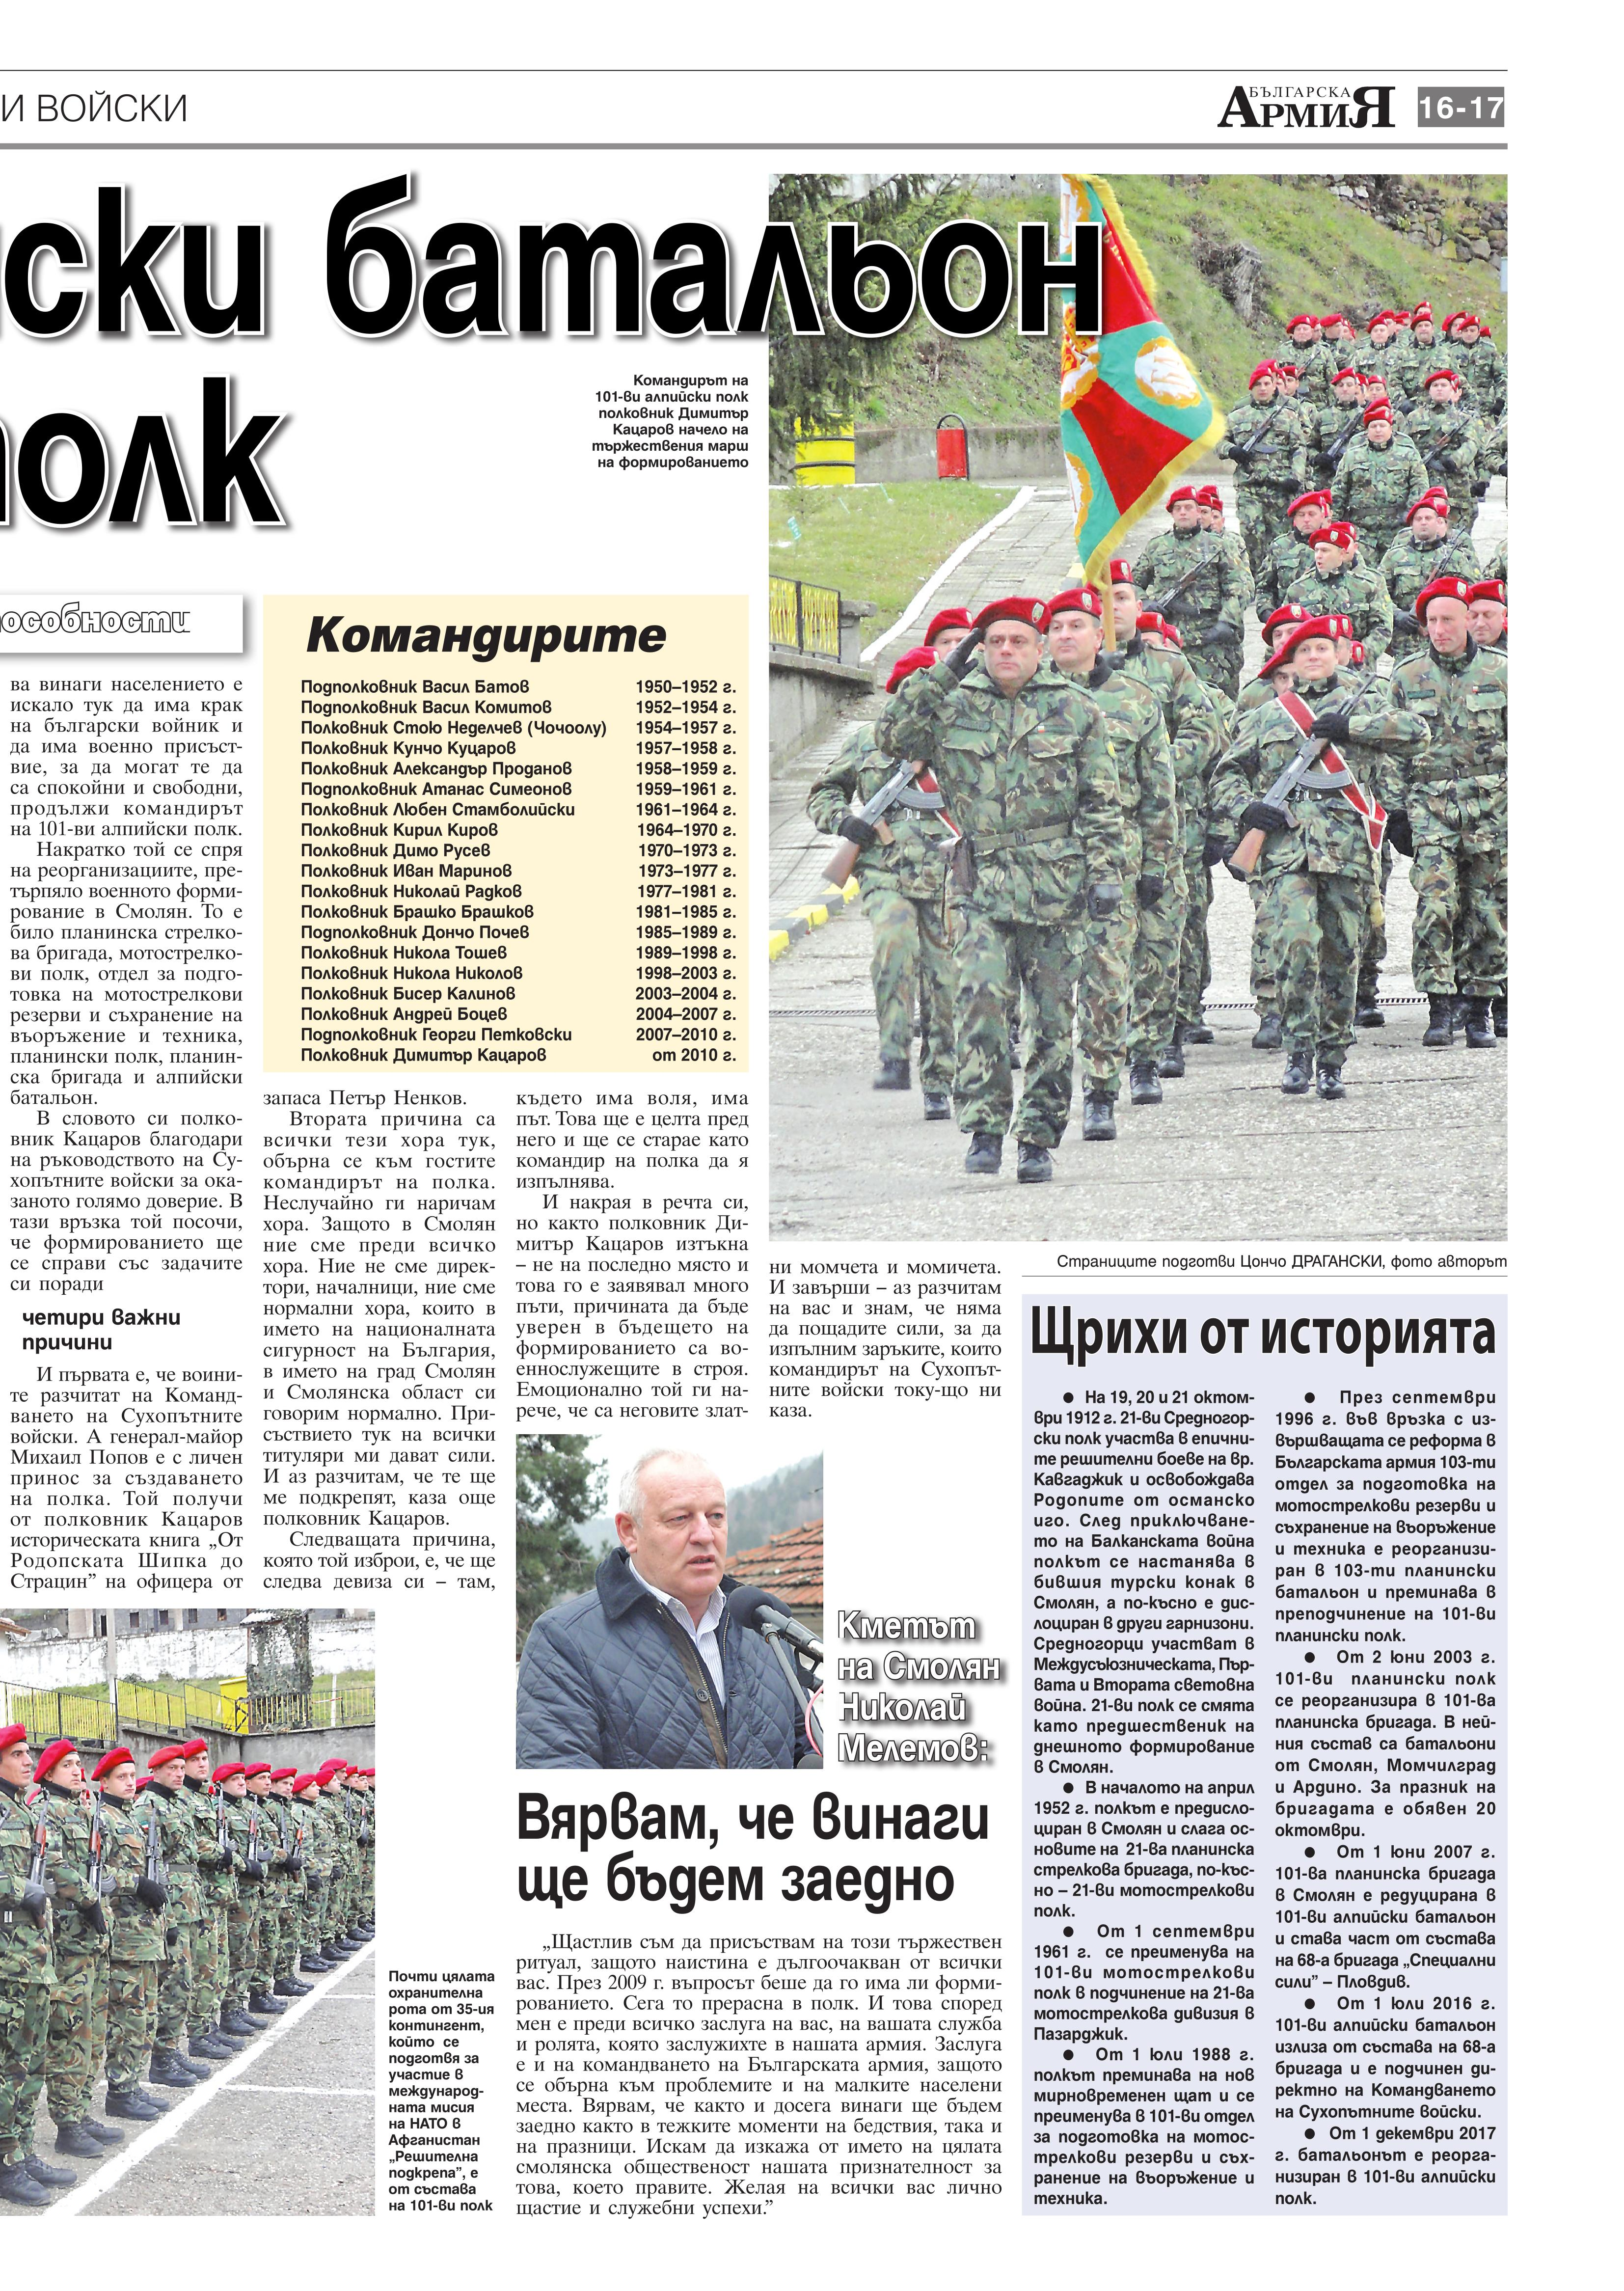 https://armymedia.bg/wp-content/uploads/2015/06/17.page1_-35.jpg